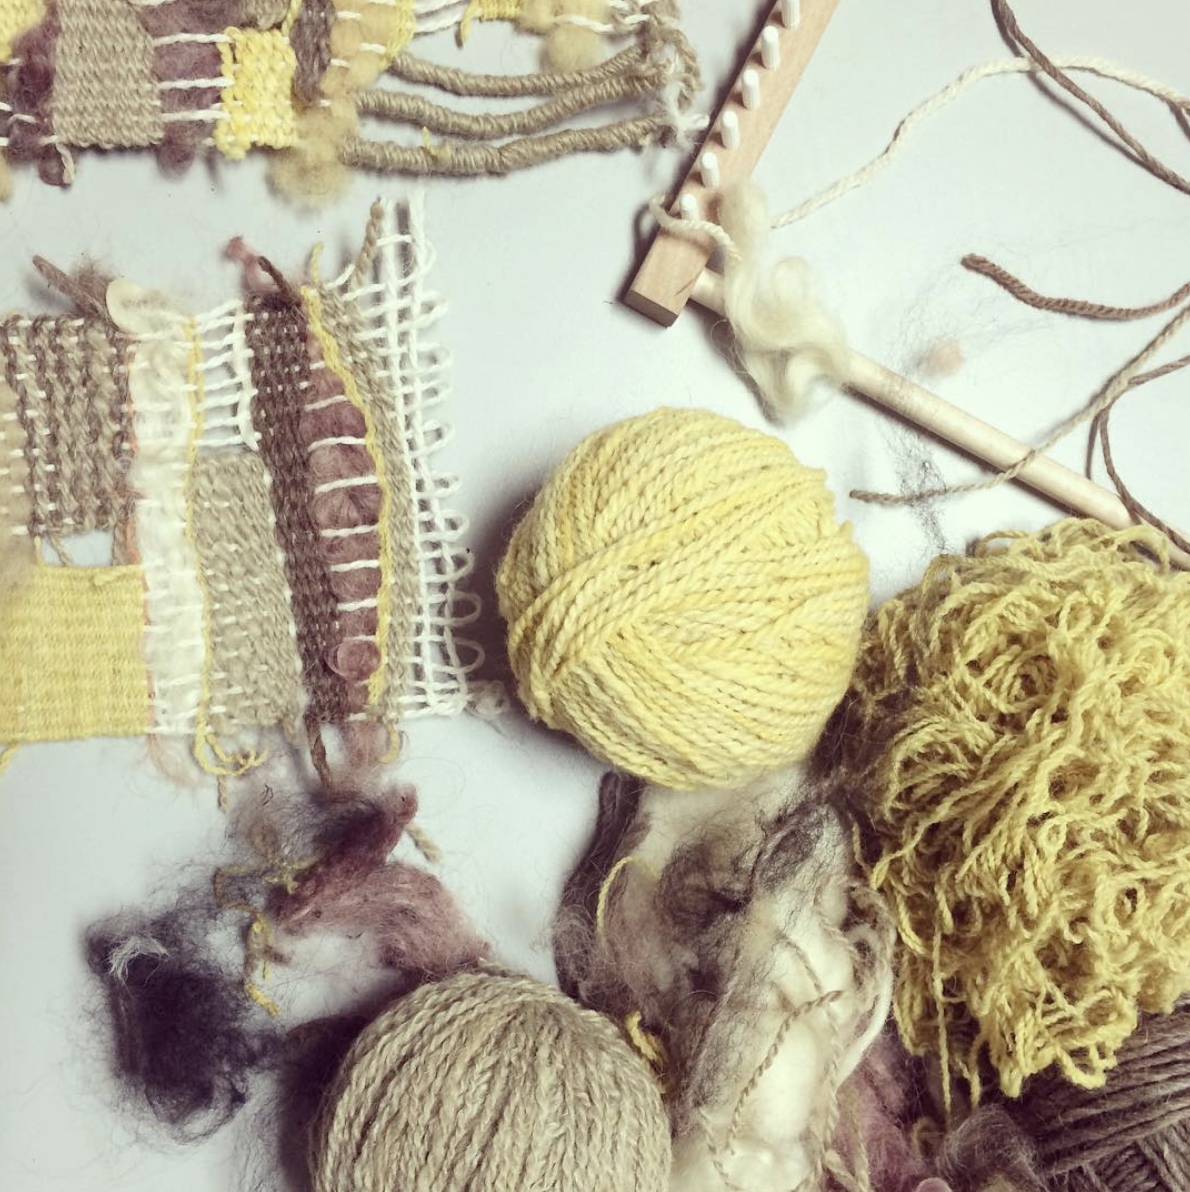 fiberhouse collective weaving workshop